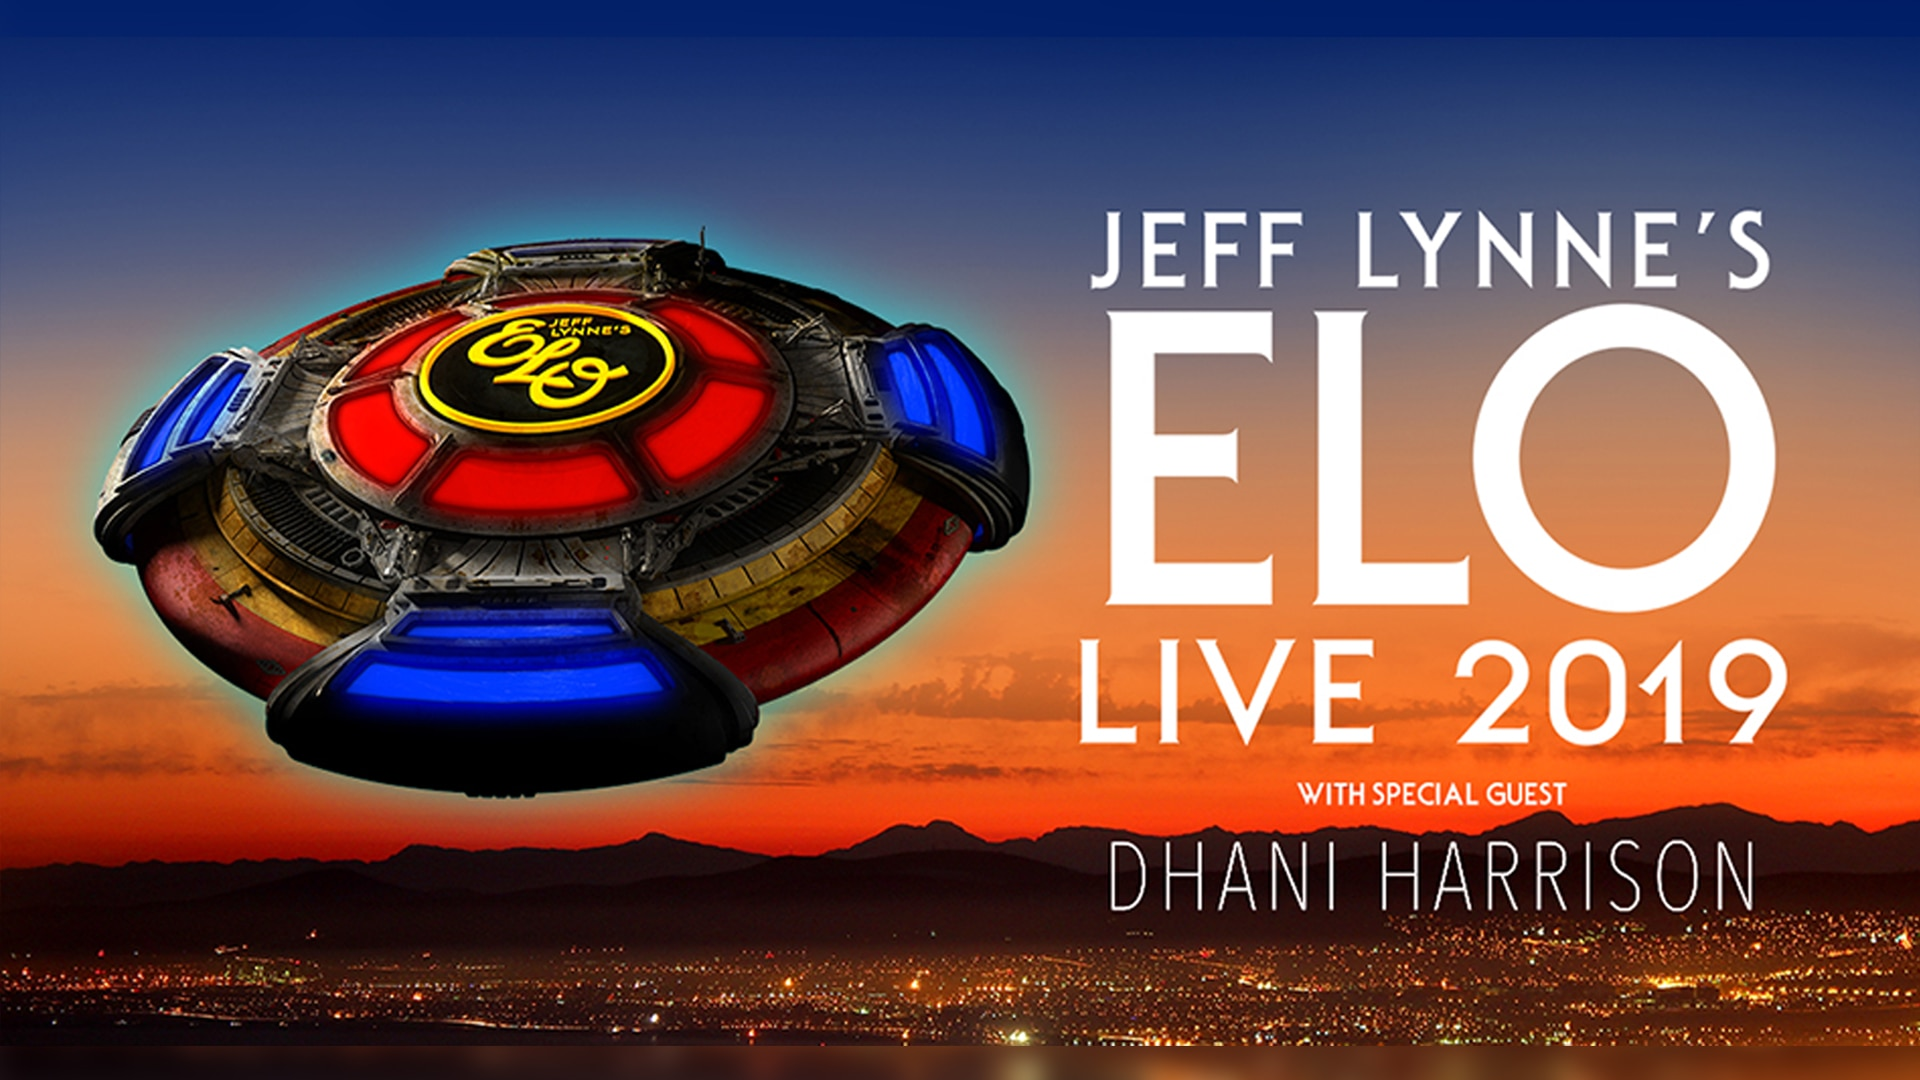 JEFF LYNNE'S ELO - Live 2019 with special guest Dhani Harrison